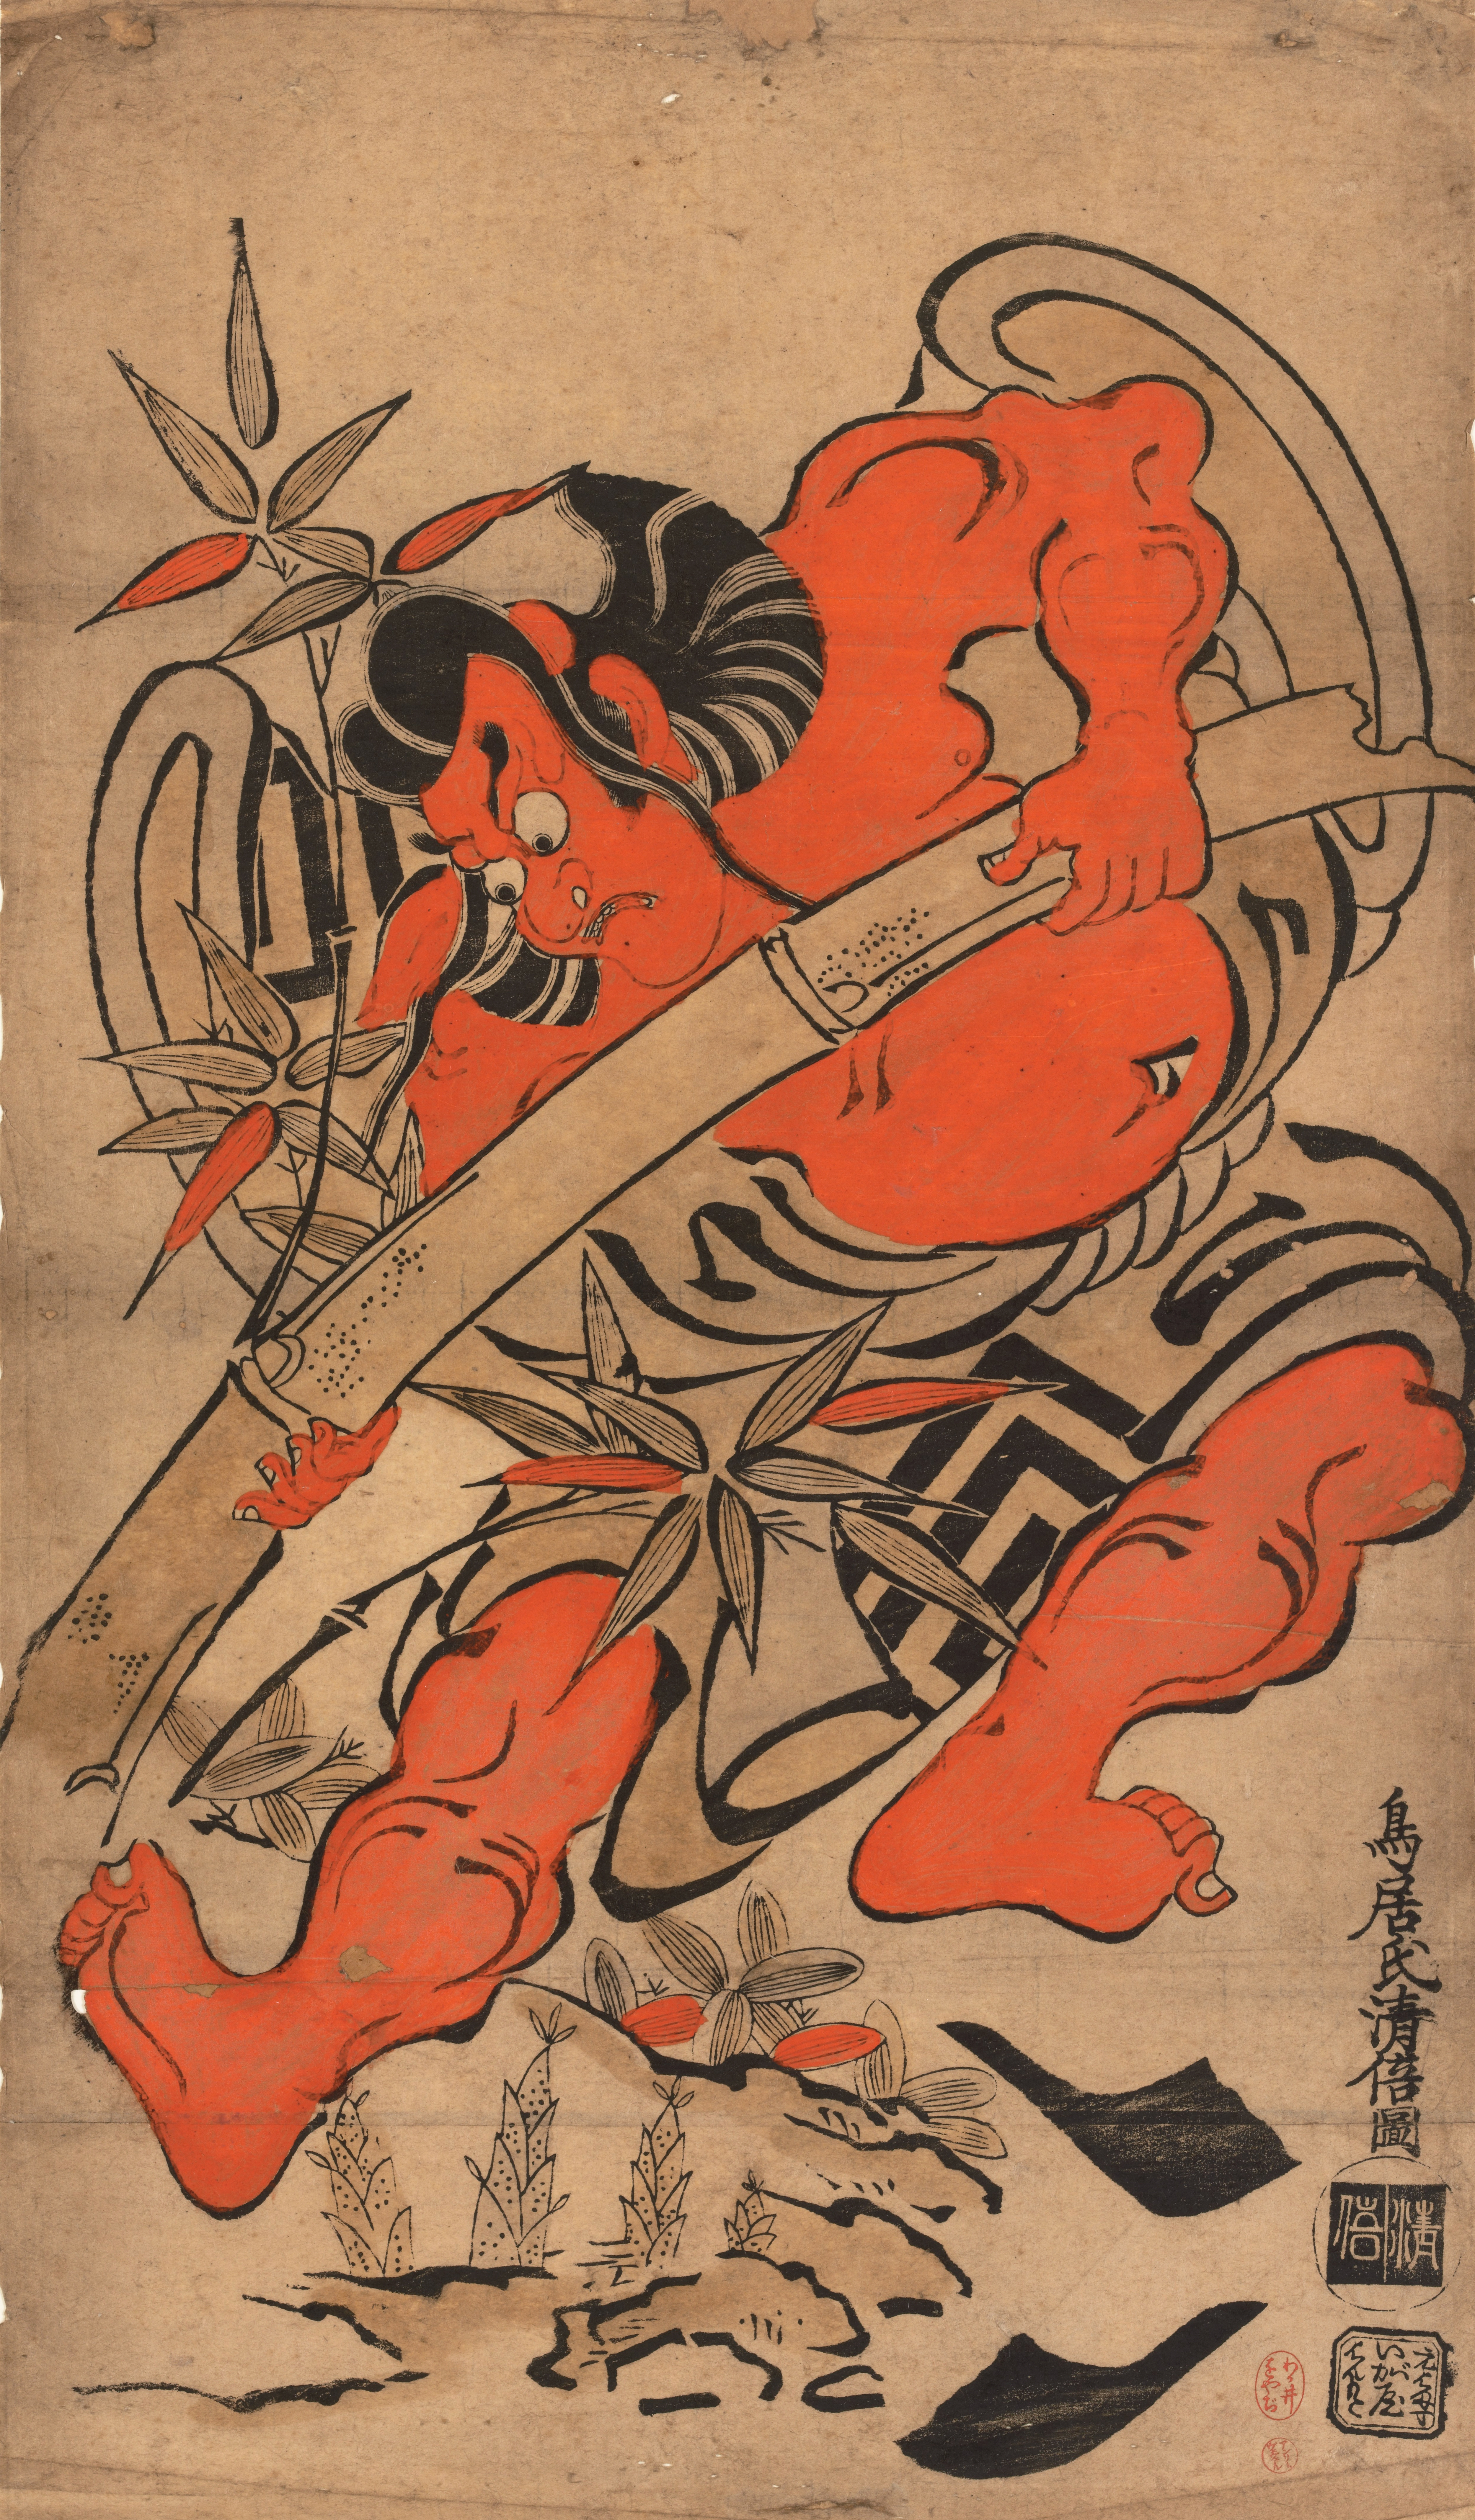 Summer Brief: Second interest: Woodblock printing in Japan